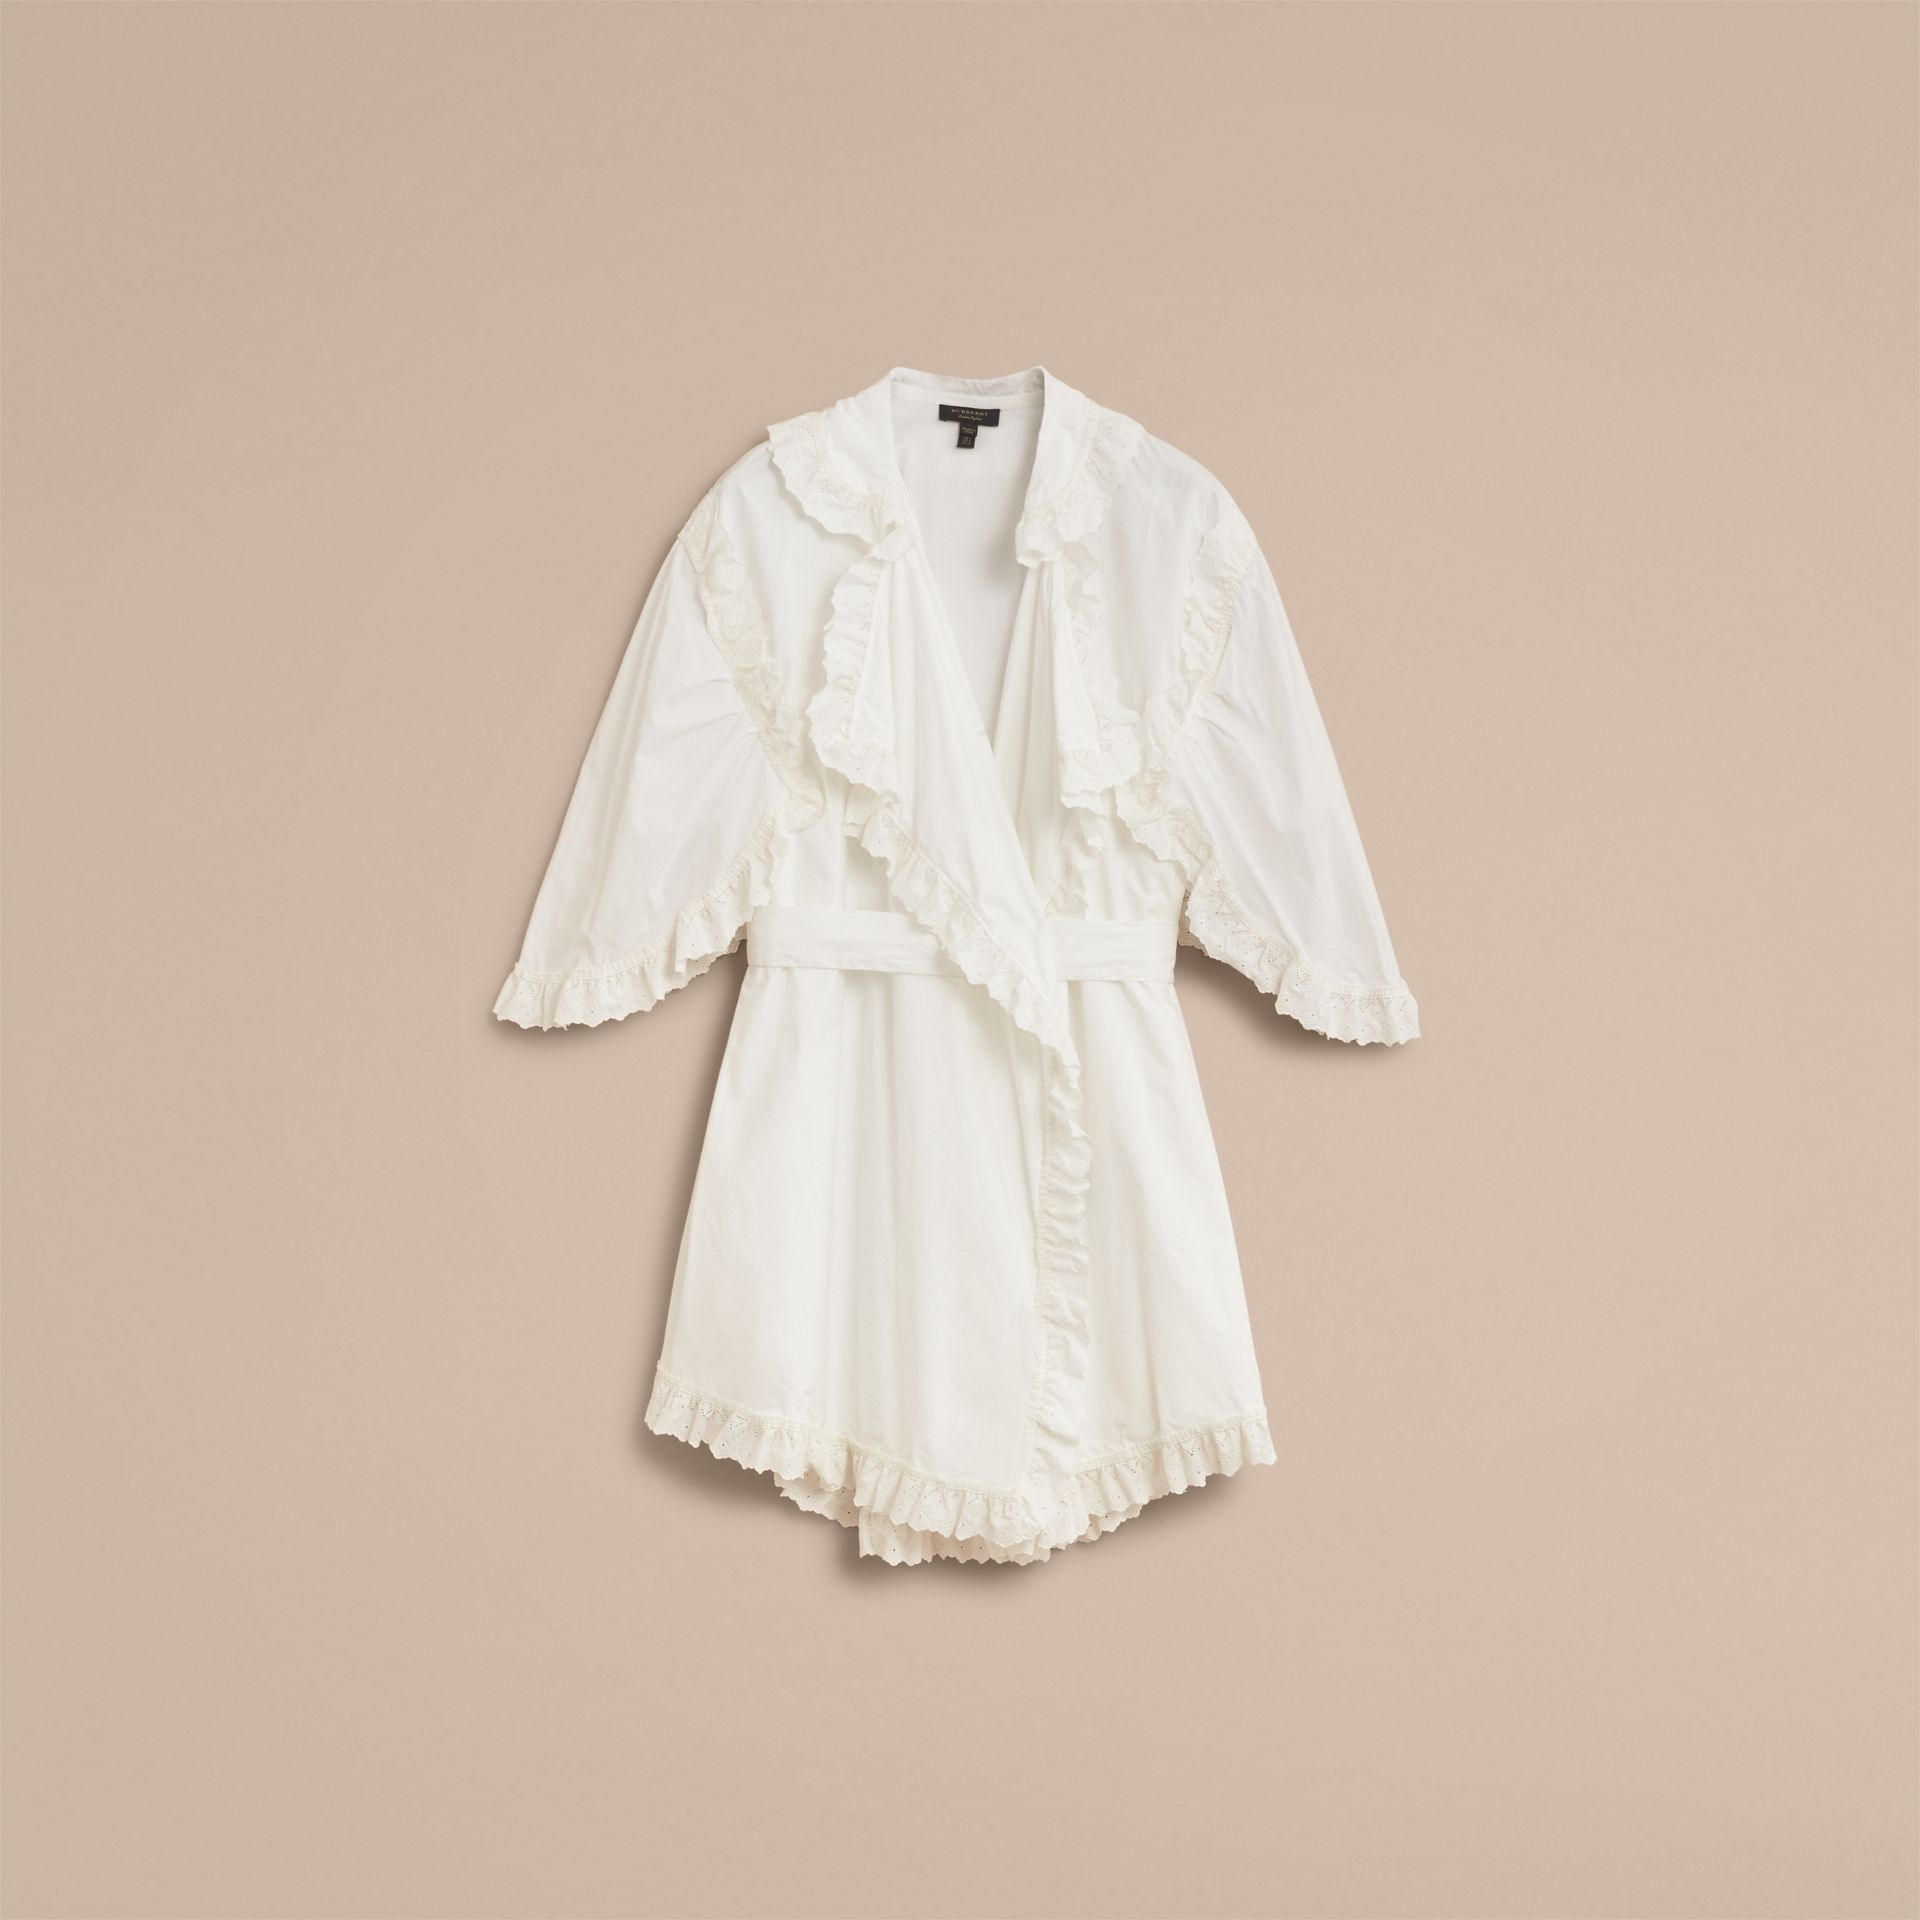 Broderie Anglaise Ruffle Cotton Dress in White - Women | Burberry - gallery image 4